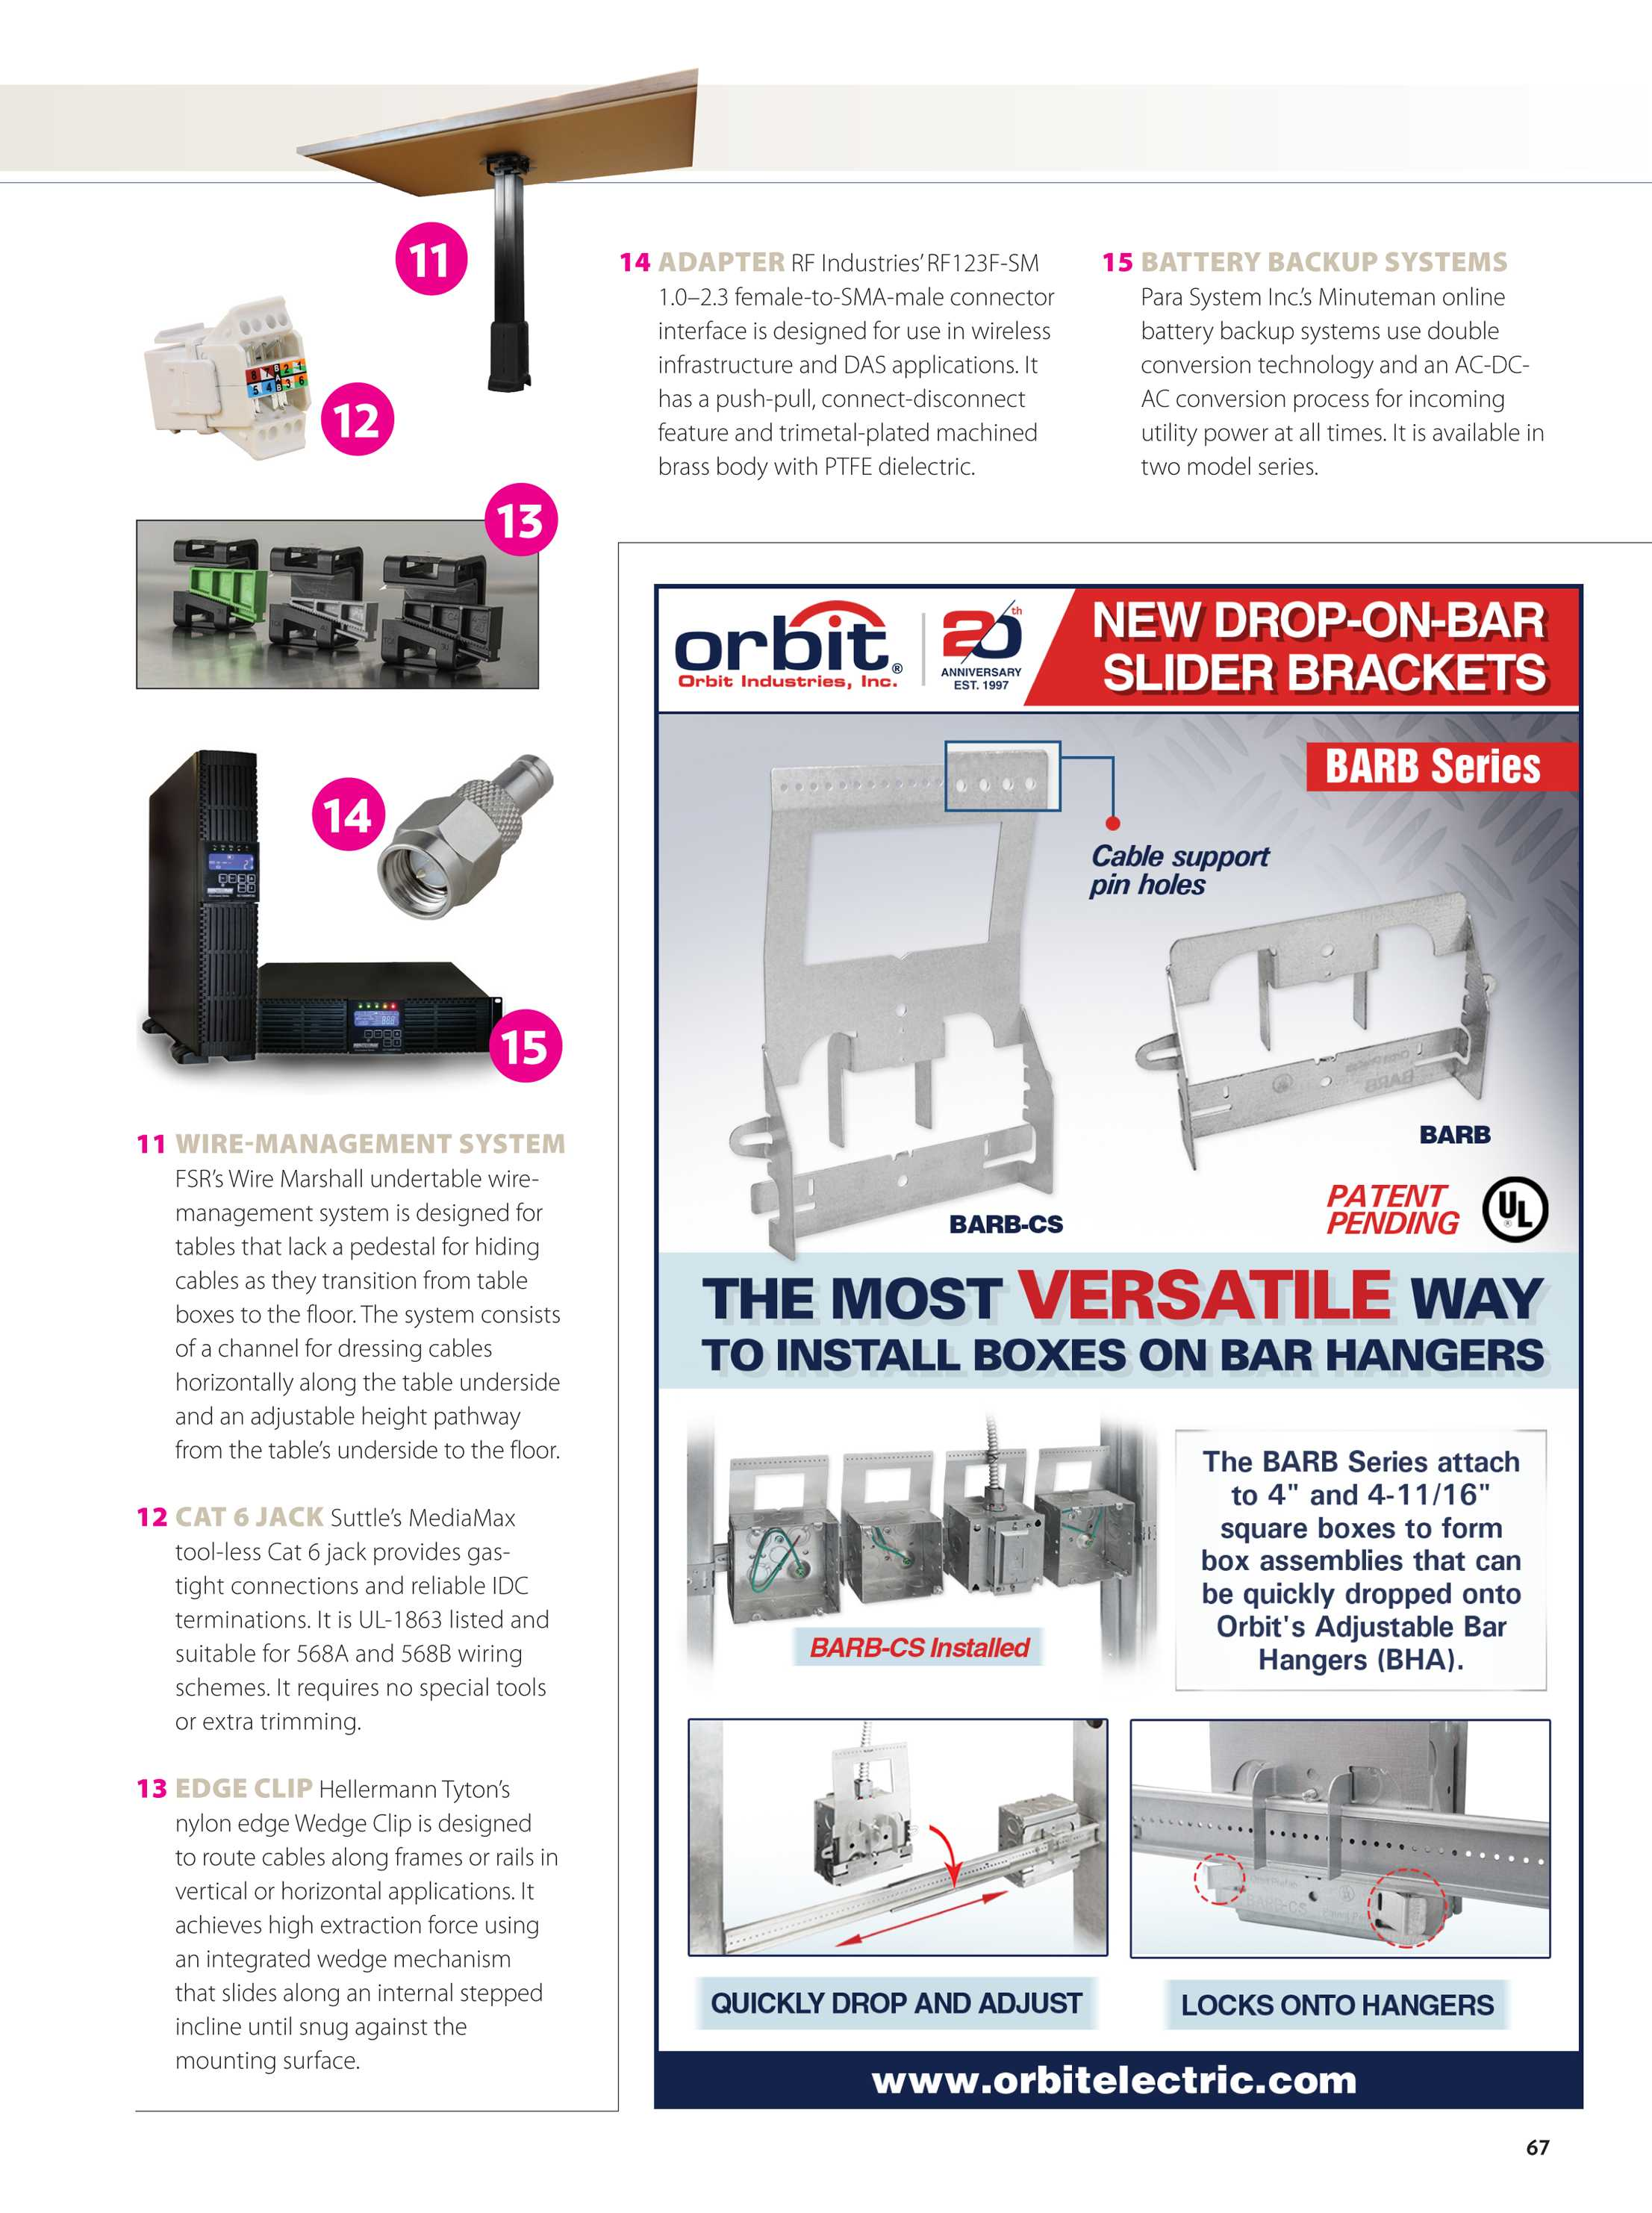 Electrical Contractor December 2017 Page 66 Surface Wiring Channel 67